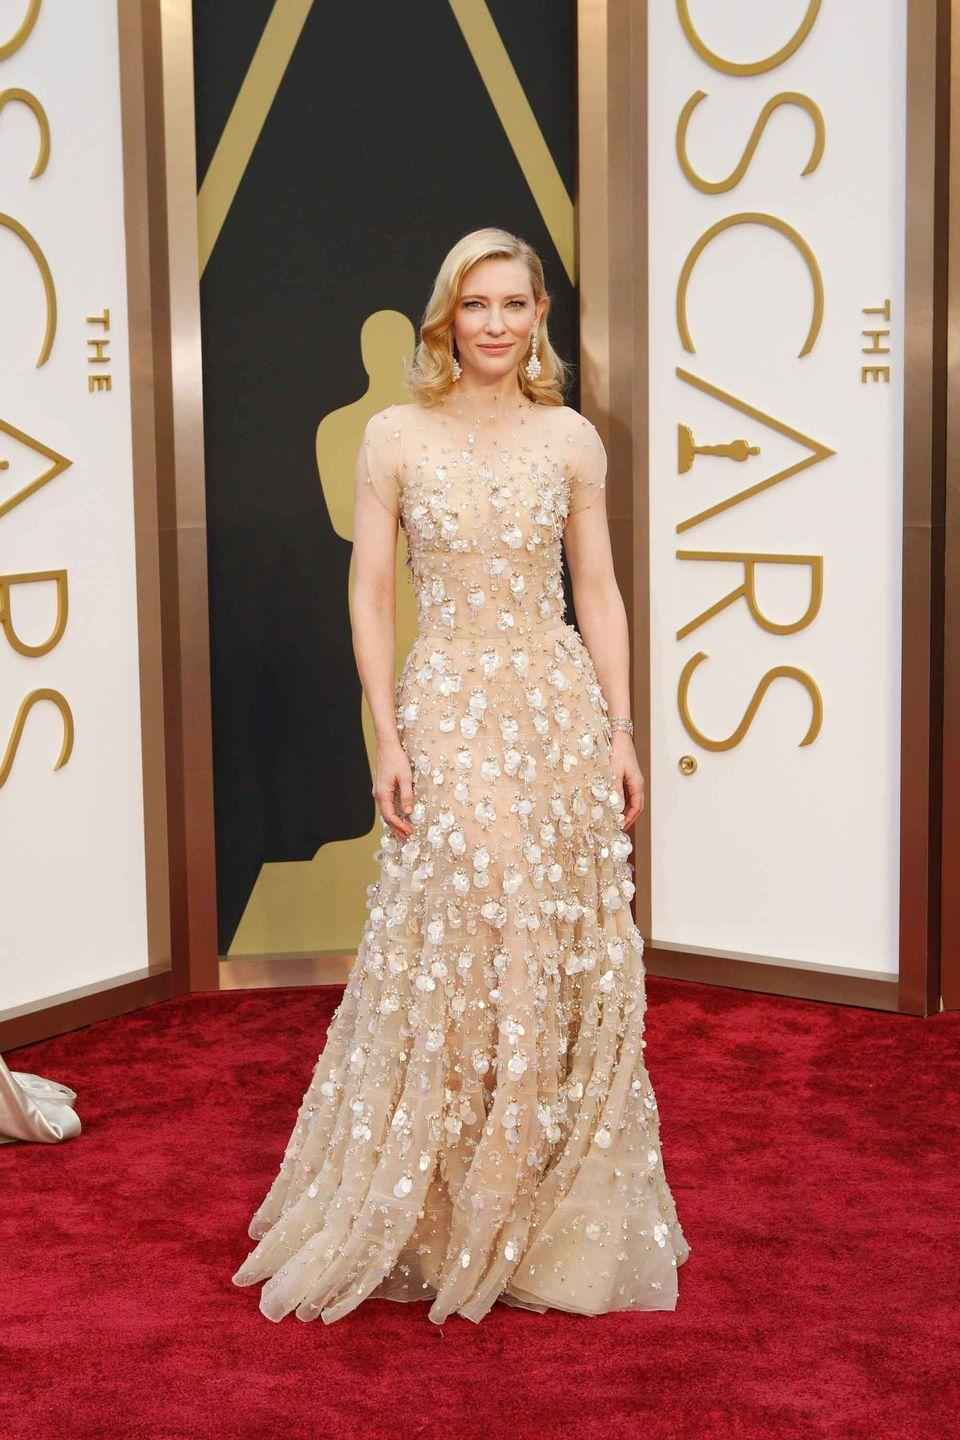 <p>Cate Blanchett in a neutral-hued Armani Privé gown with flower embellishments.</p>